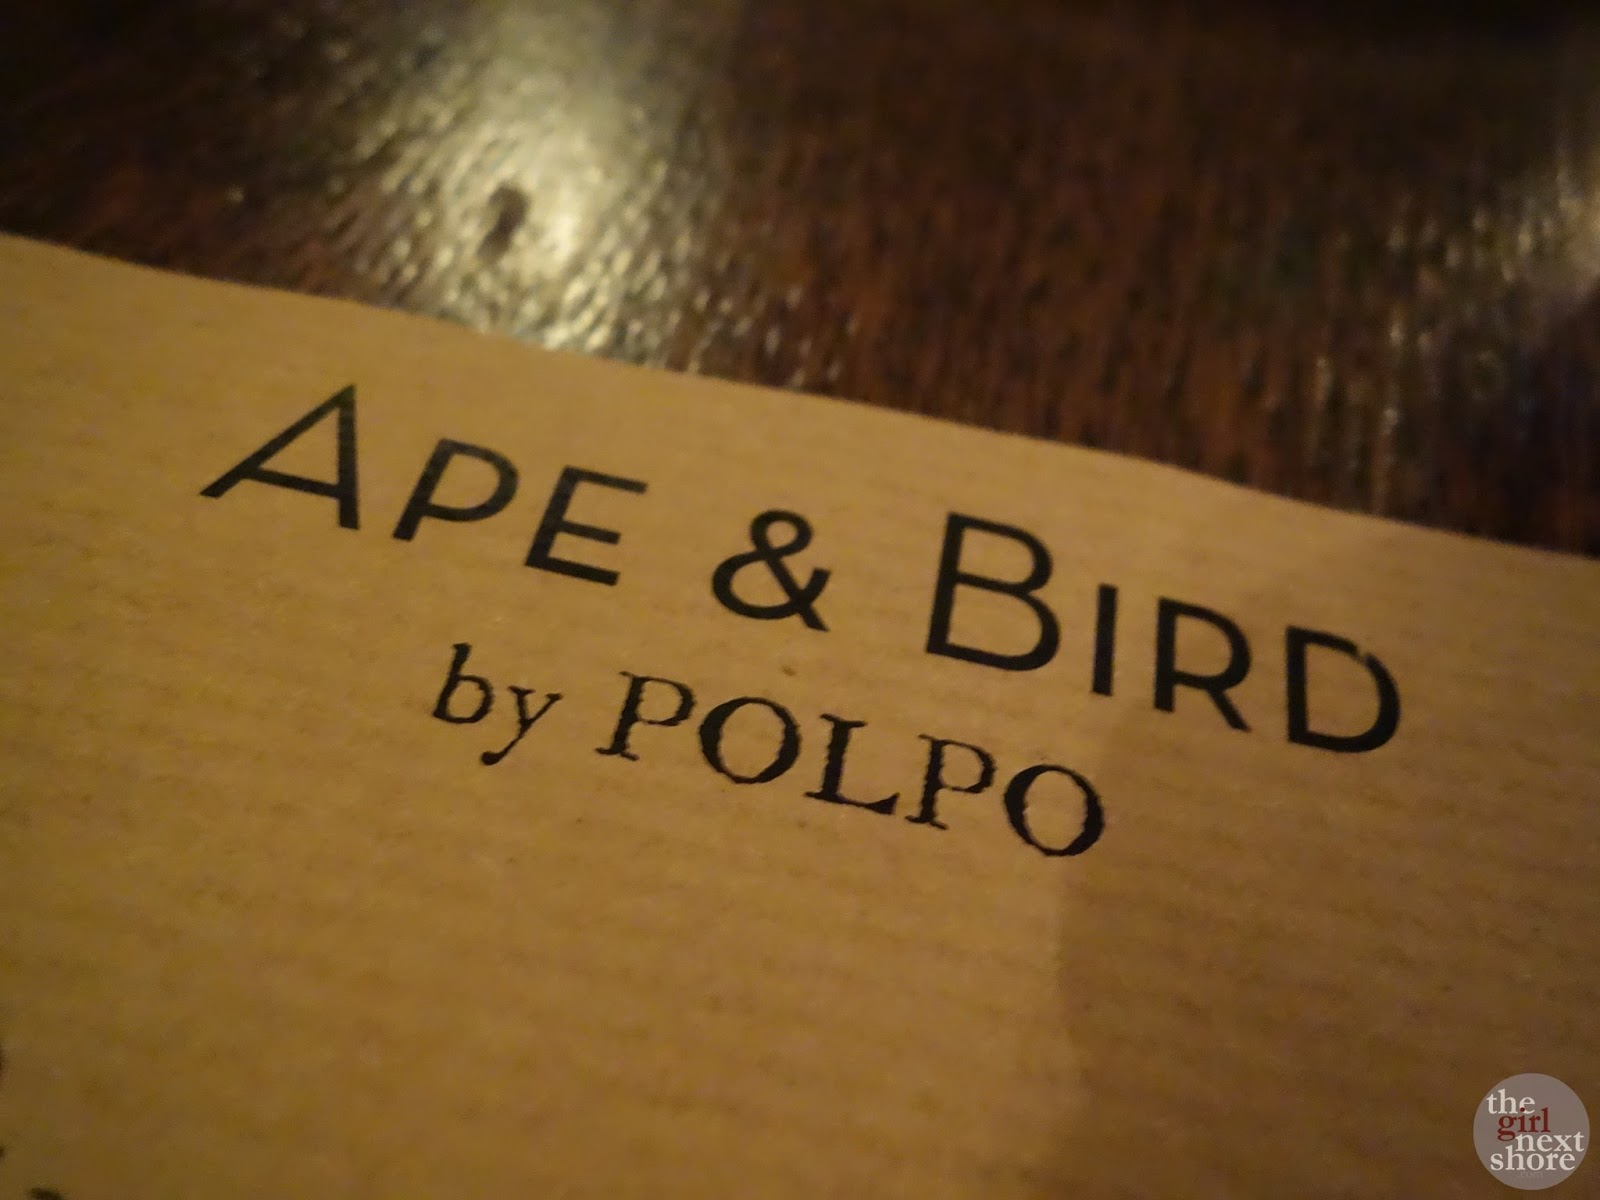 The Ape and Bird: where you get what it says on the tin